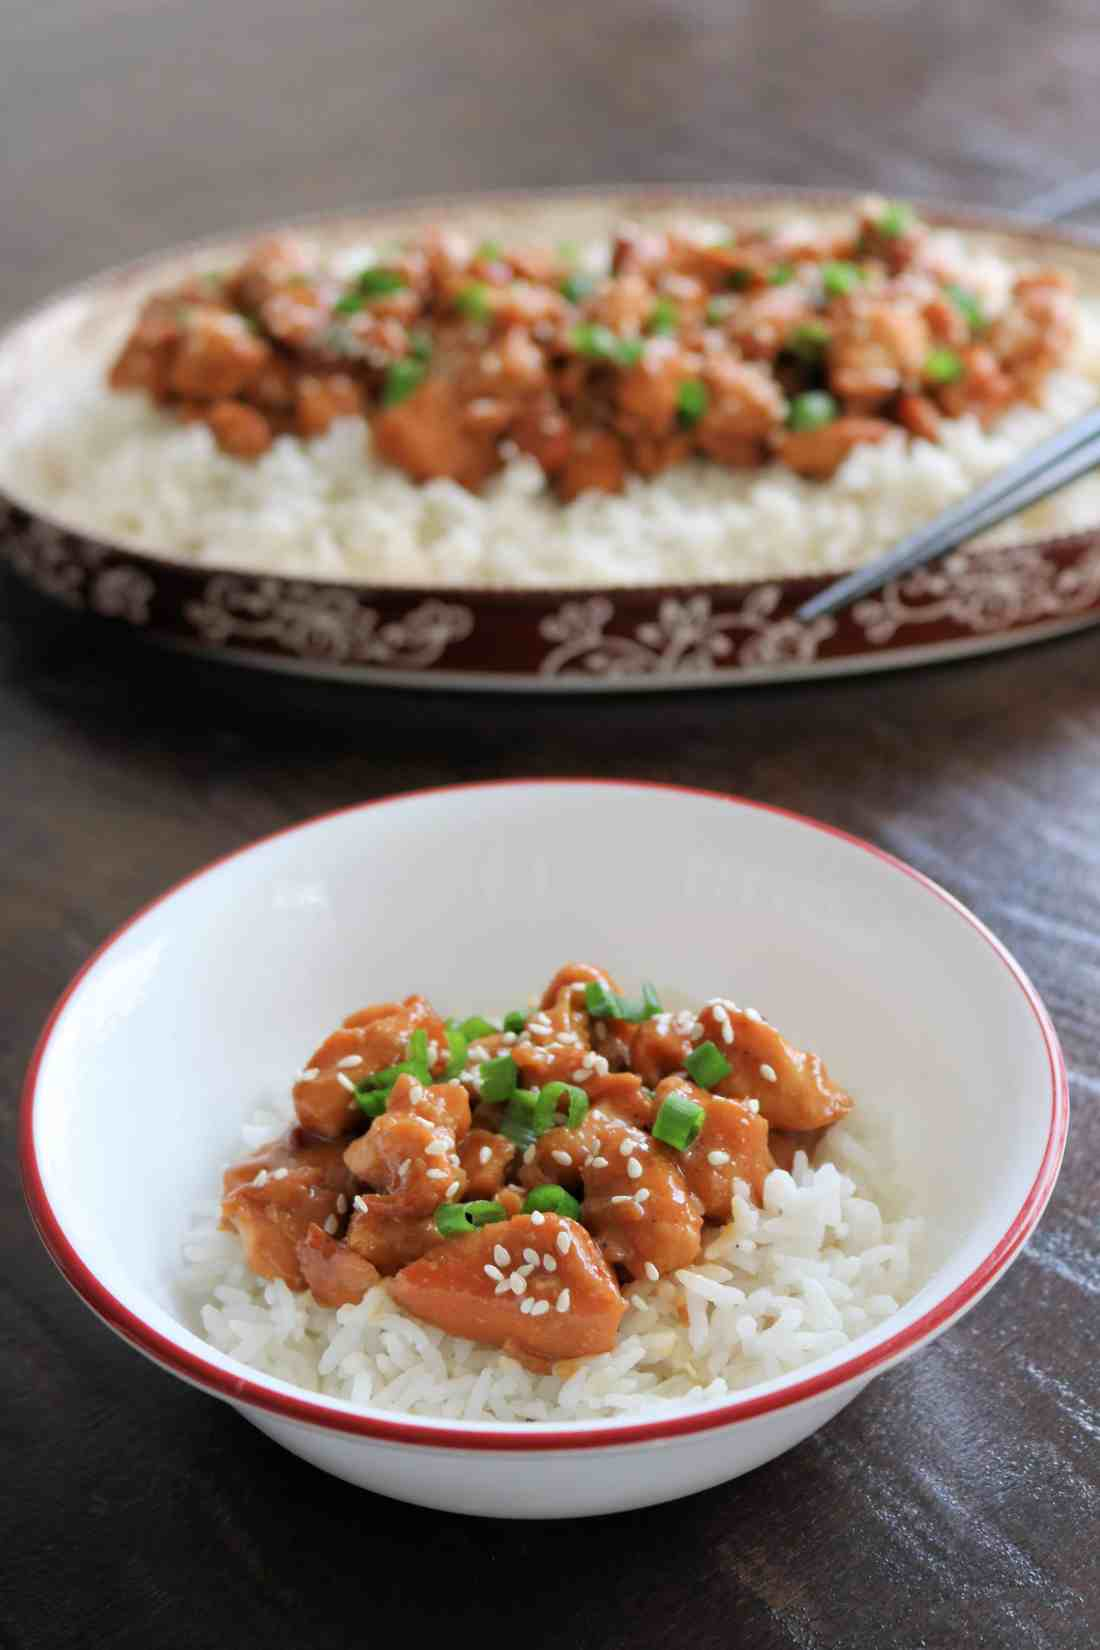 Try my healthy and delicious slow cooker honey sesame chicken for an easy weeknight meal! It only takes 2 hours in the crockpot and tastes even better than takeout! #chicken #chickenrecipe #dinner